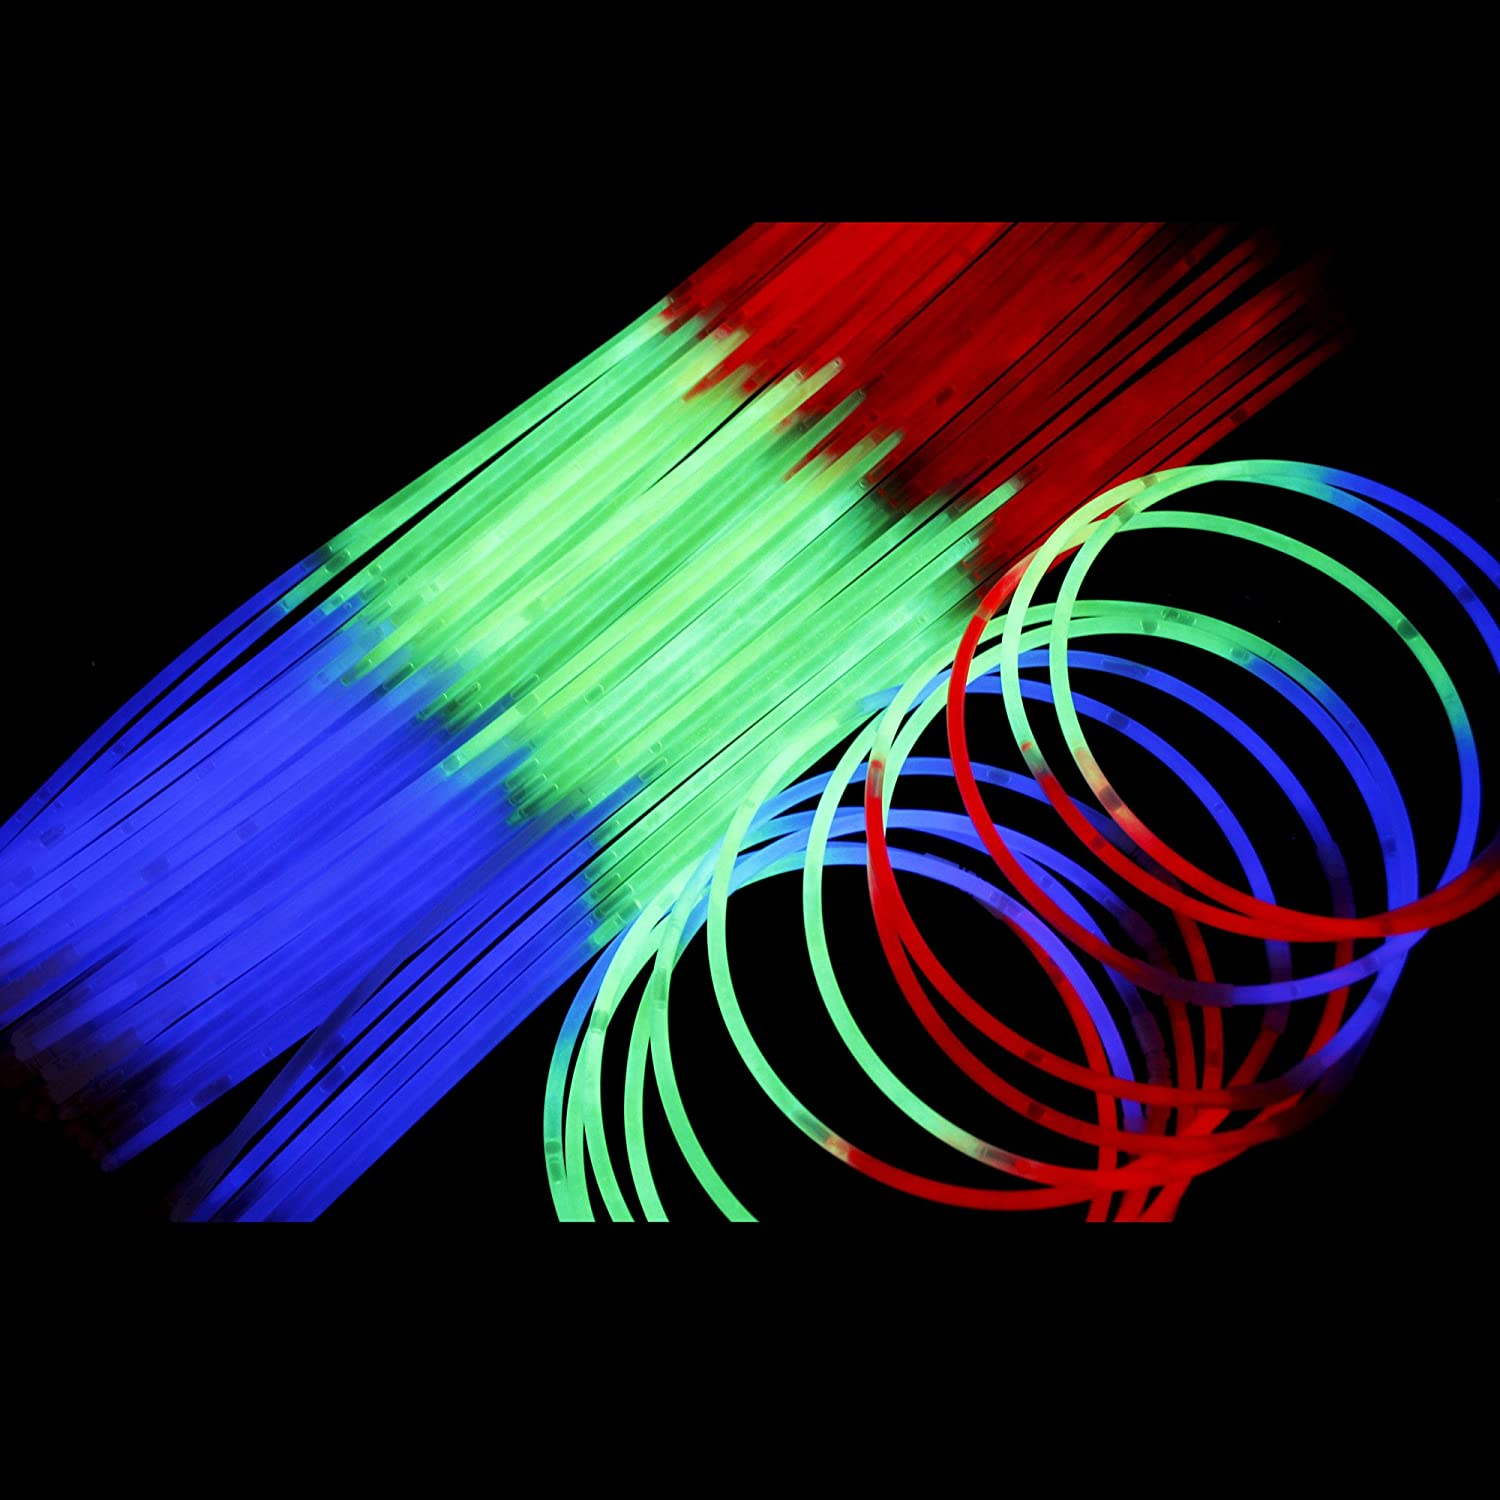 Fun Central J5 22 Inch Glow Necklaces Light Up Necklaces Glow Necklace Bulk Glow Sticks Necklace Cool Glow Sticks Red Green Blue 50ct